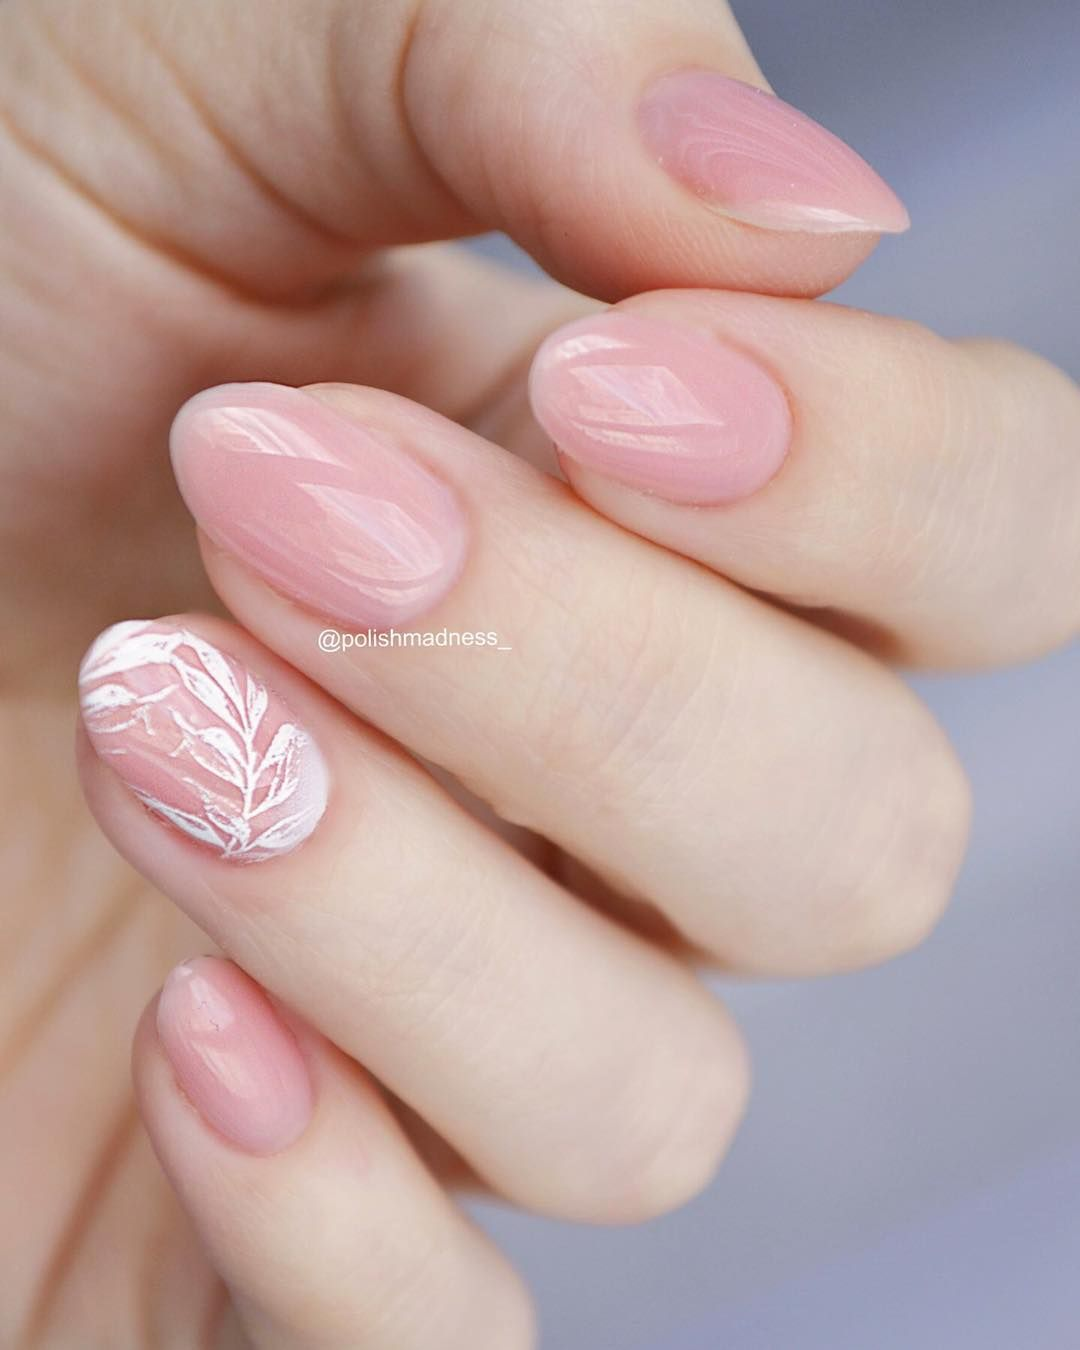 50 Unique Trendy Natural Nail Designs For Every Season – Best Comely-Fashion and Style Ideas and Inspirations